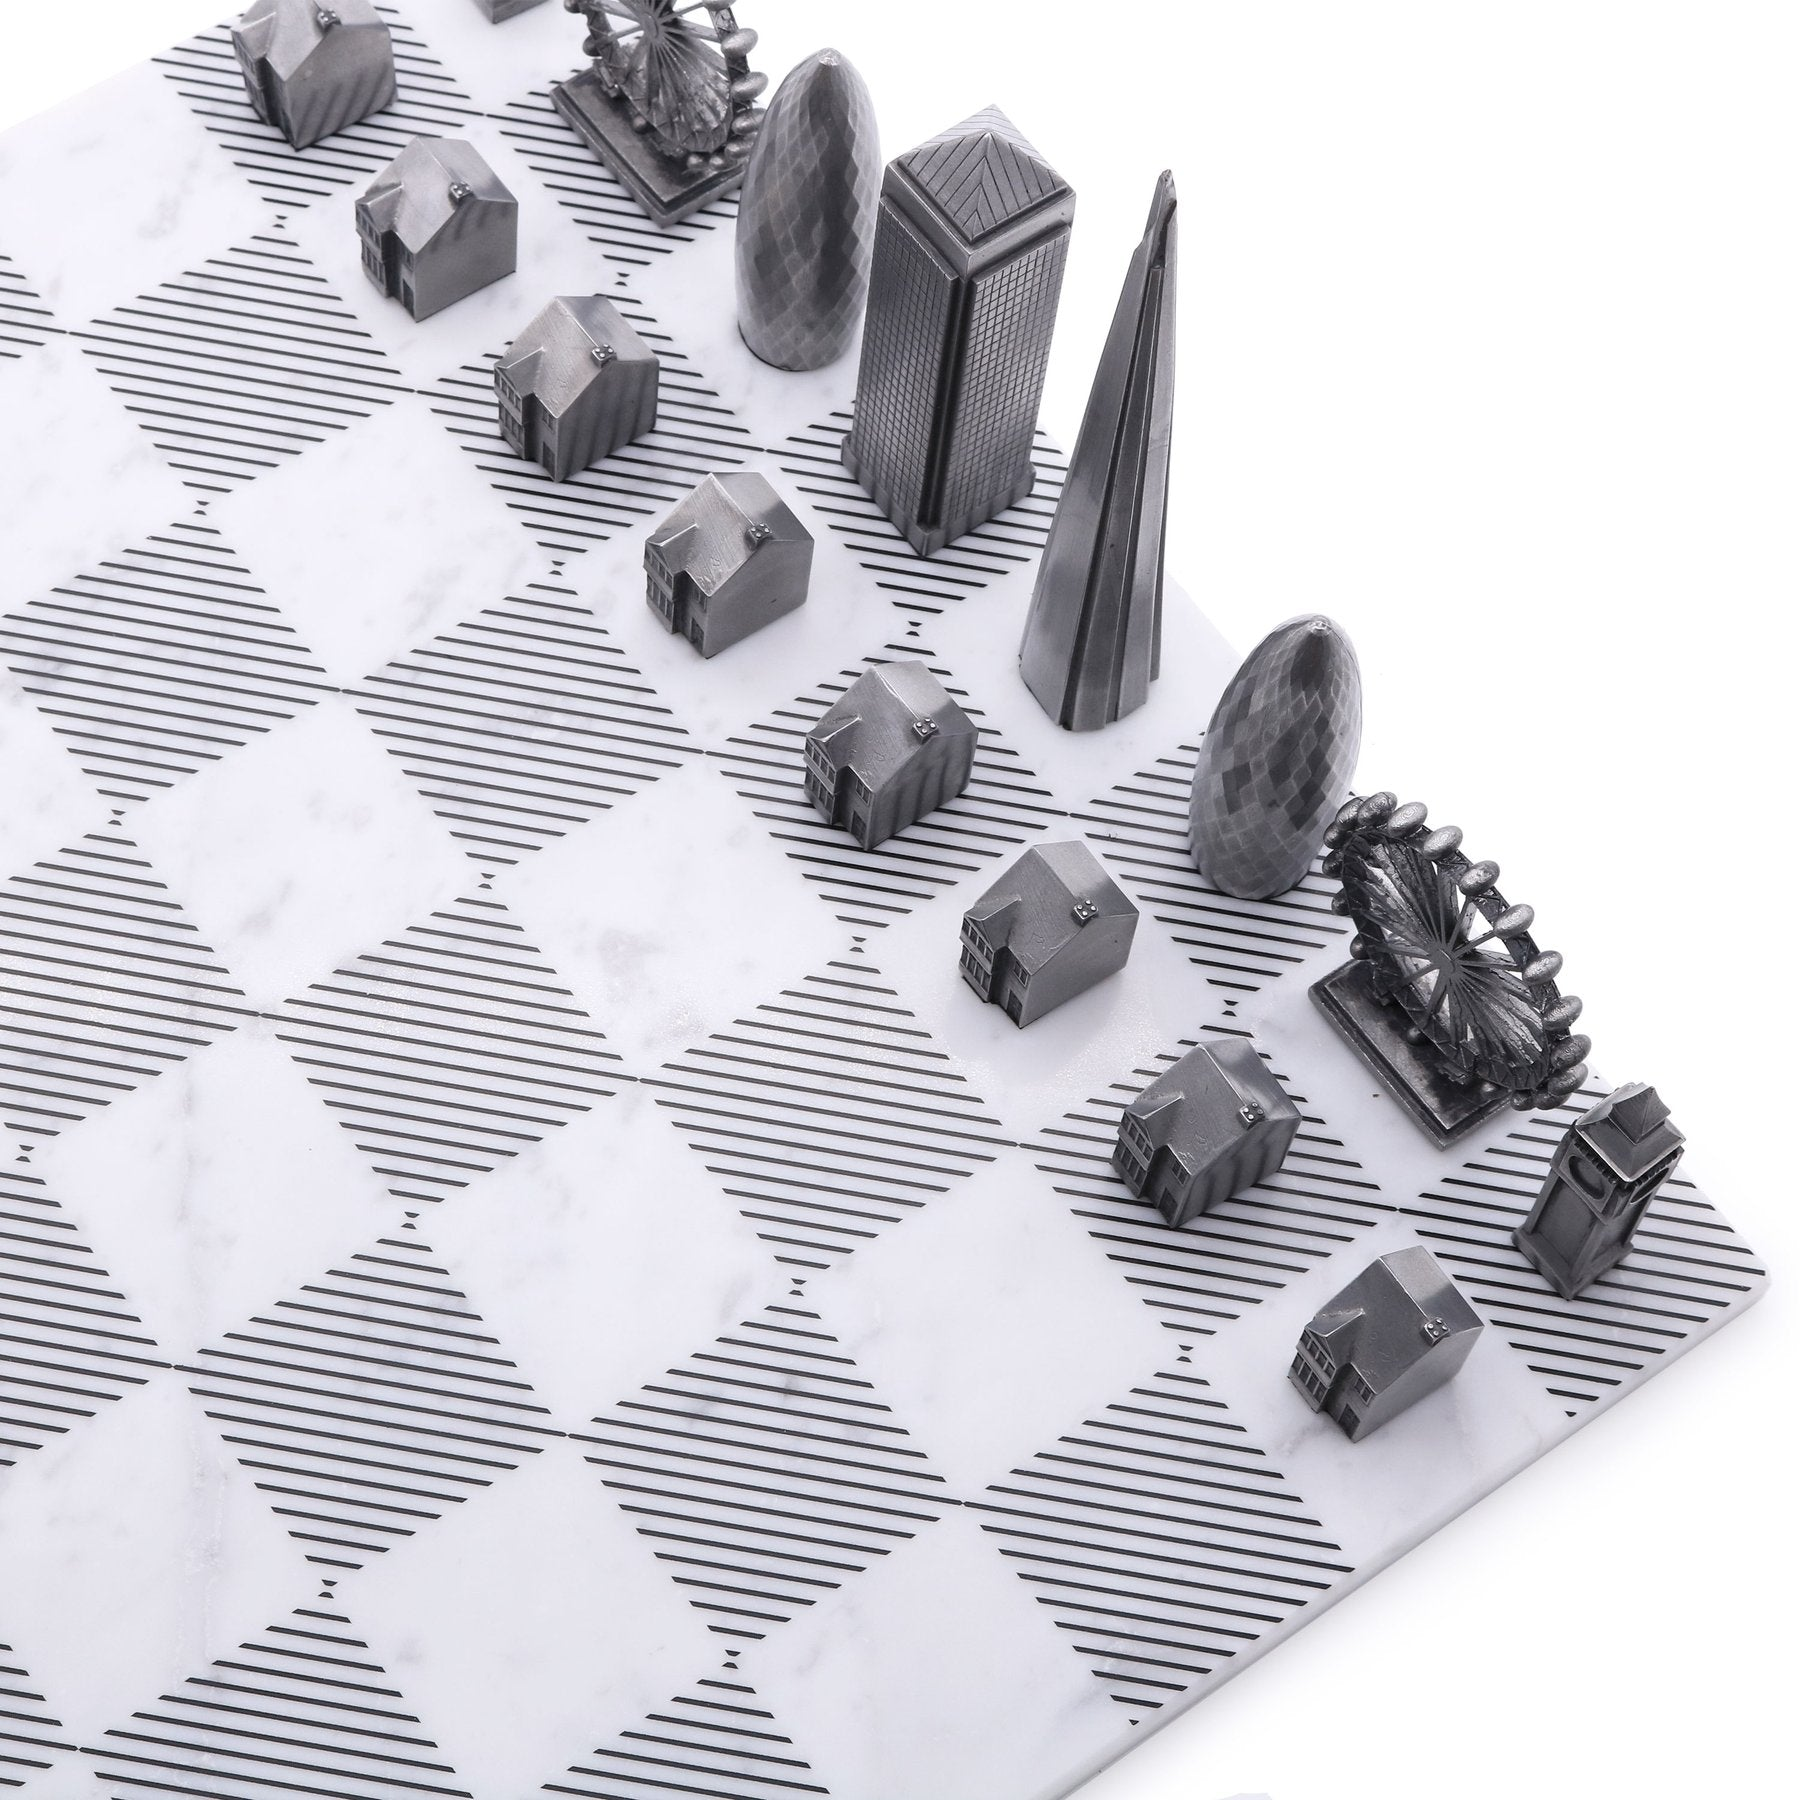 London Chess Set - Premium Metal + Marble Board